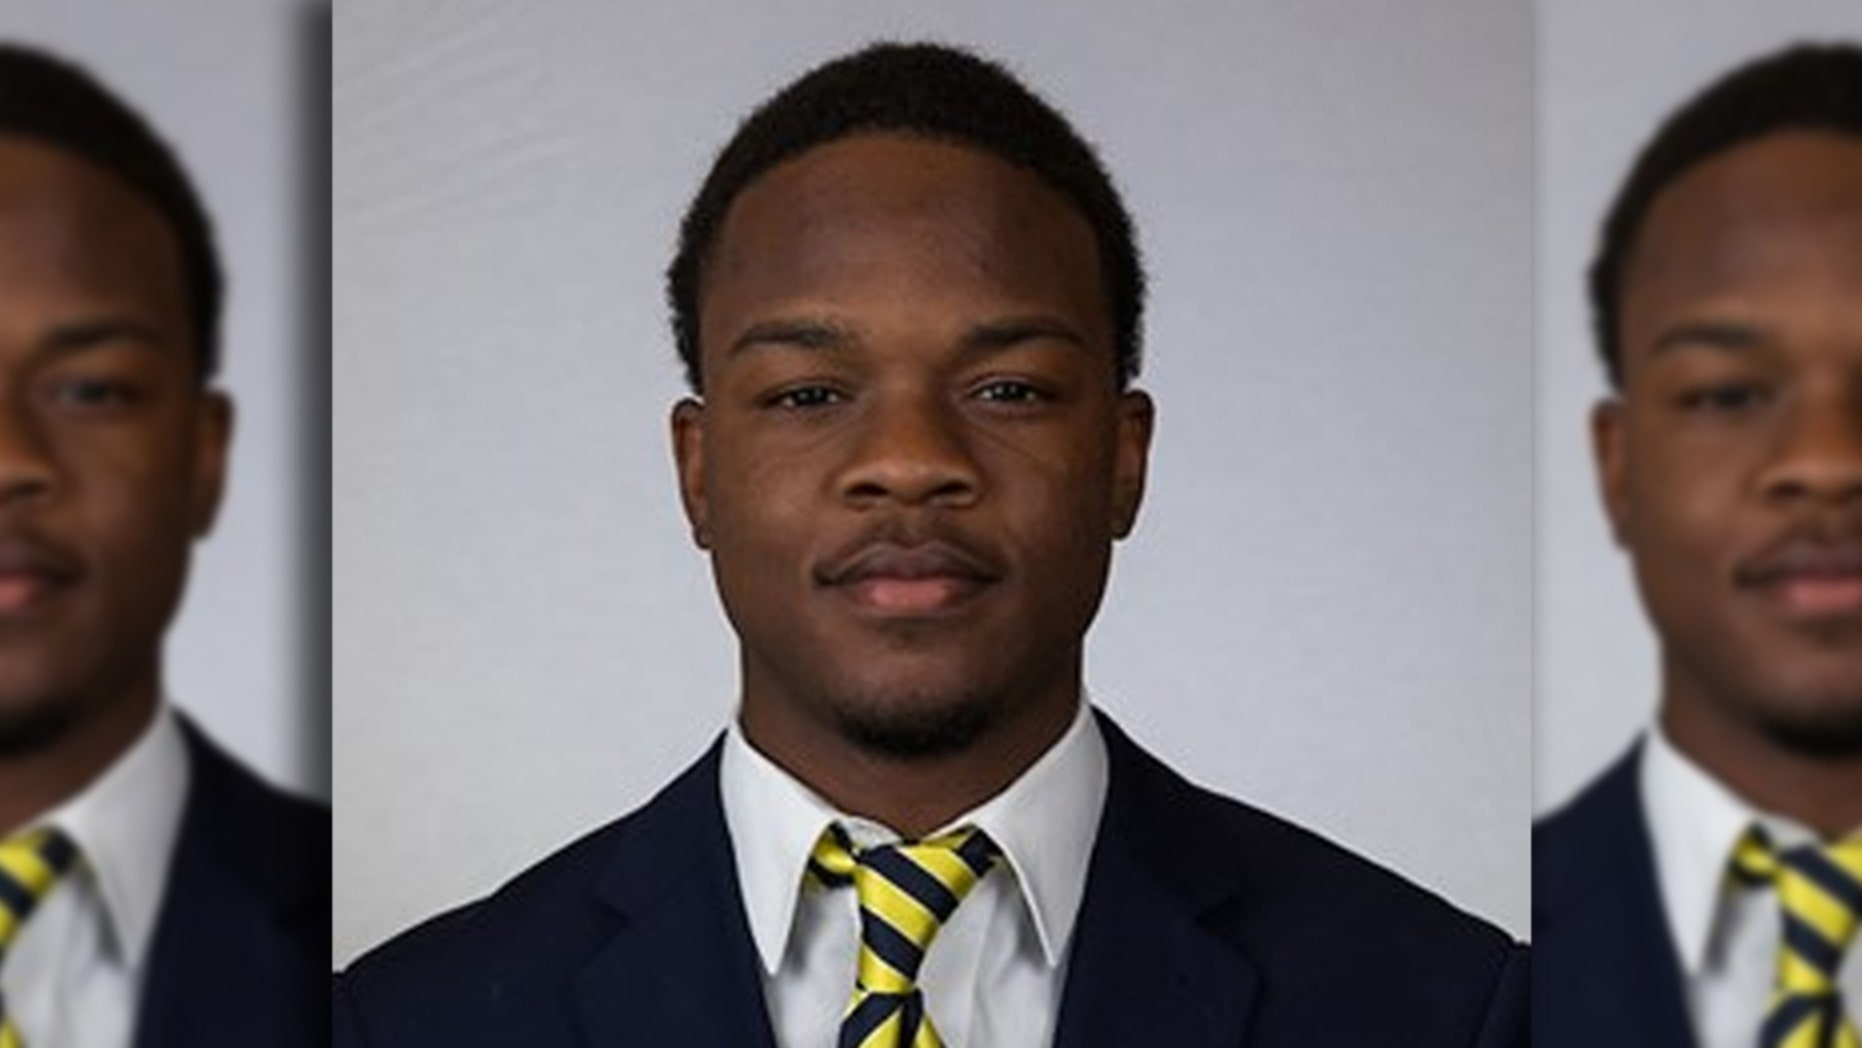 Bryce Turner, 19, died Saturday days after he suffered a medical emergency during a non-team workout.